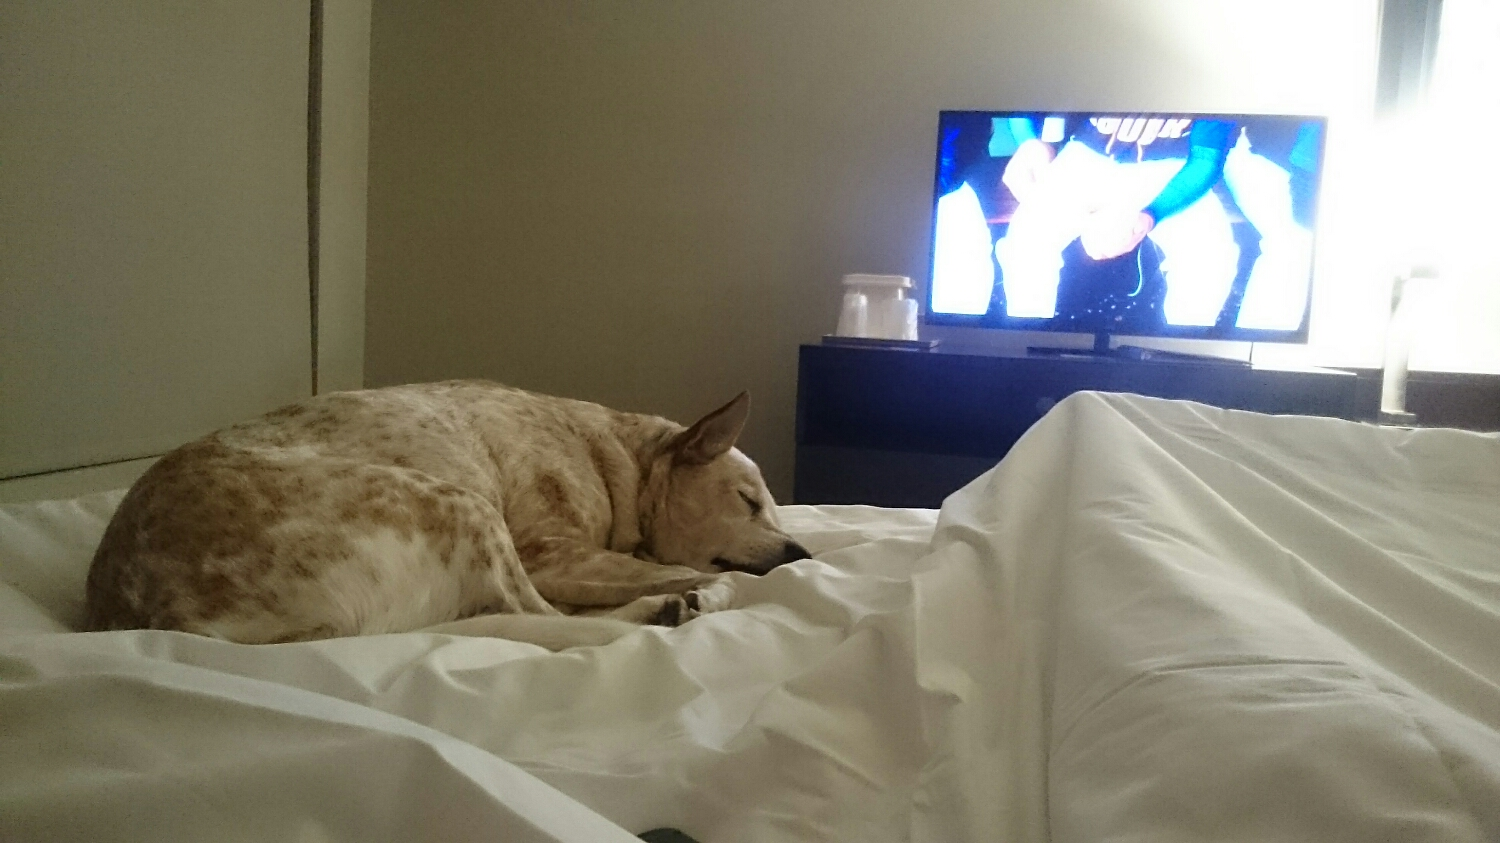 Ollie enjoys our hotel room bed.